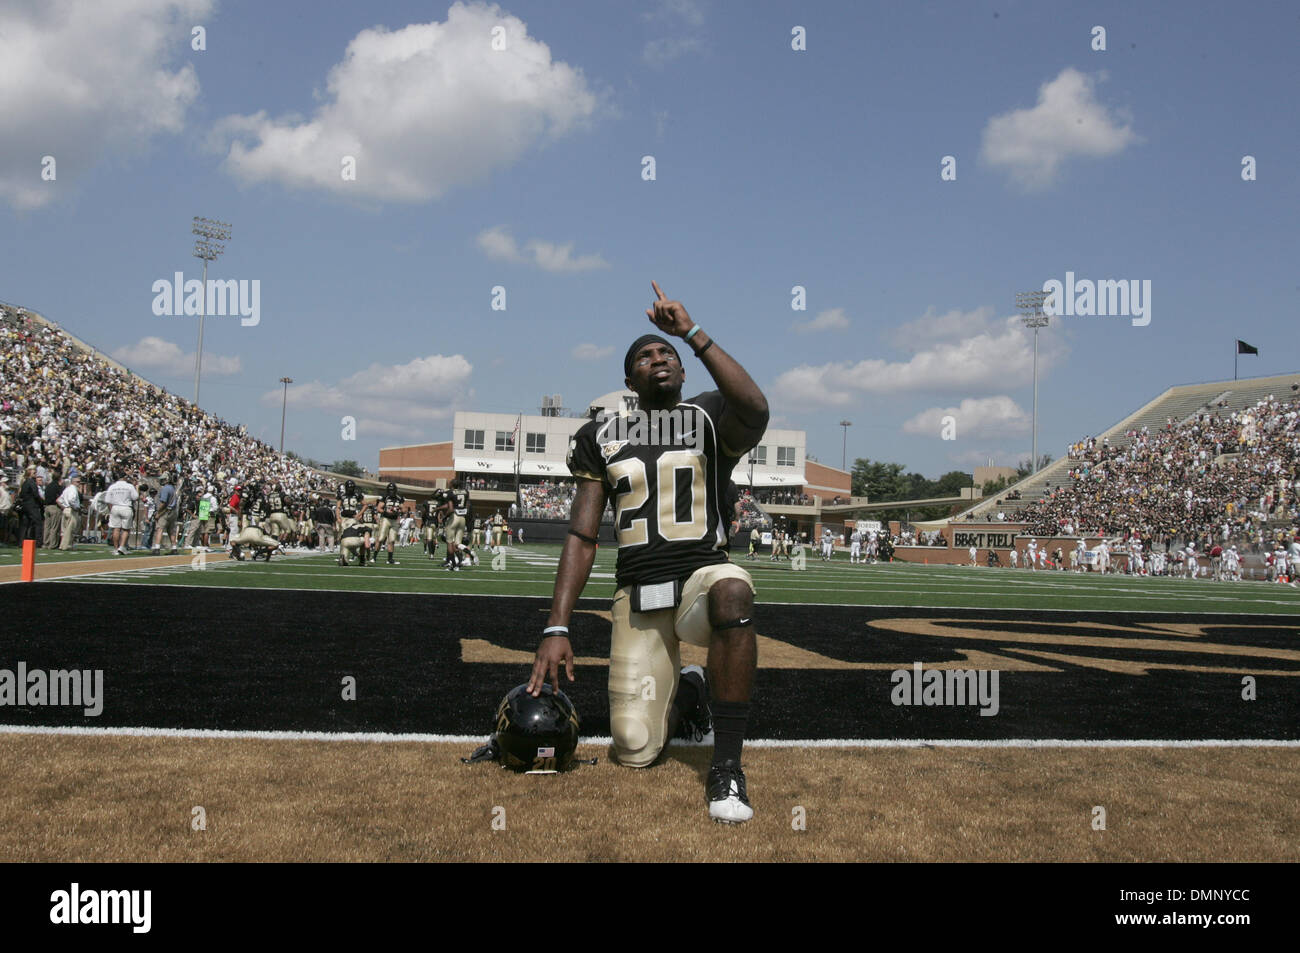 Sep. 12, 2009 - Wake Forest, North Carolina, U.S - September 12, 2009:  Wake Forest running back Lovell Jackson #20 spends a moment in silence prior to the game.  Jackson caught a 44-yard pass that led to the winning touchdown. The Wake Forest Deacons defeated the Stanford Ducks 24-17 at BB&T Stadium in Winston-Salem, North Carolina. (Credit Image: © Margaret Bowles/Southcreek Glob - Stock Image